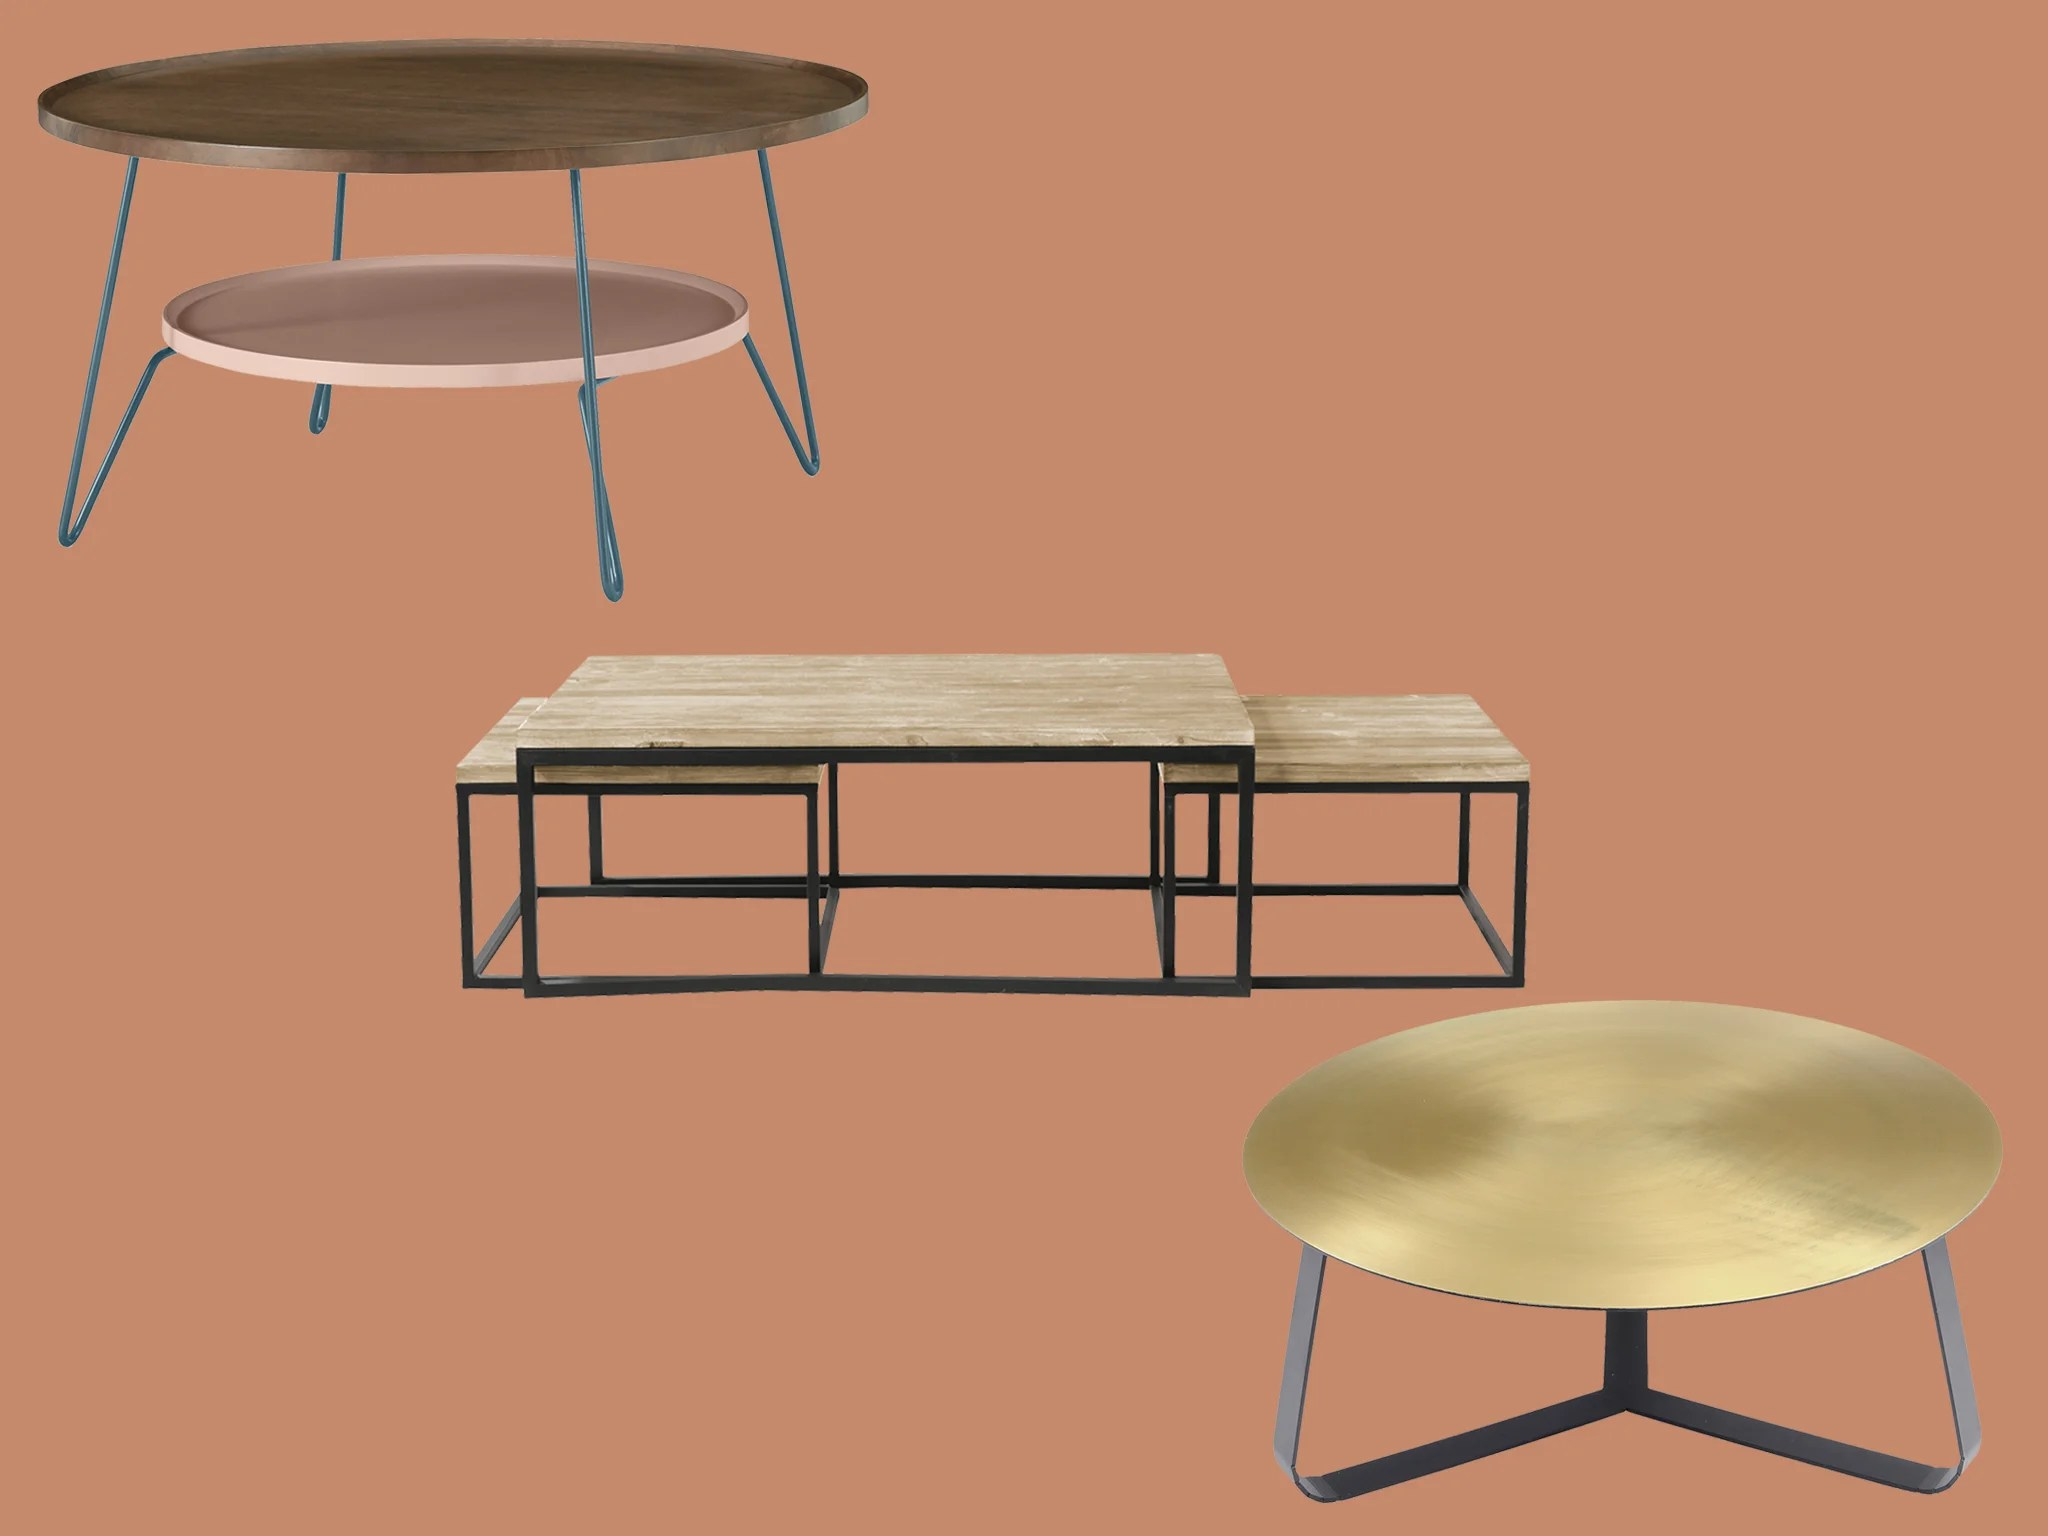 Best Coffee Tables Choose From Retro To Contemporary The Independent